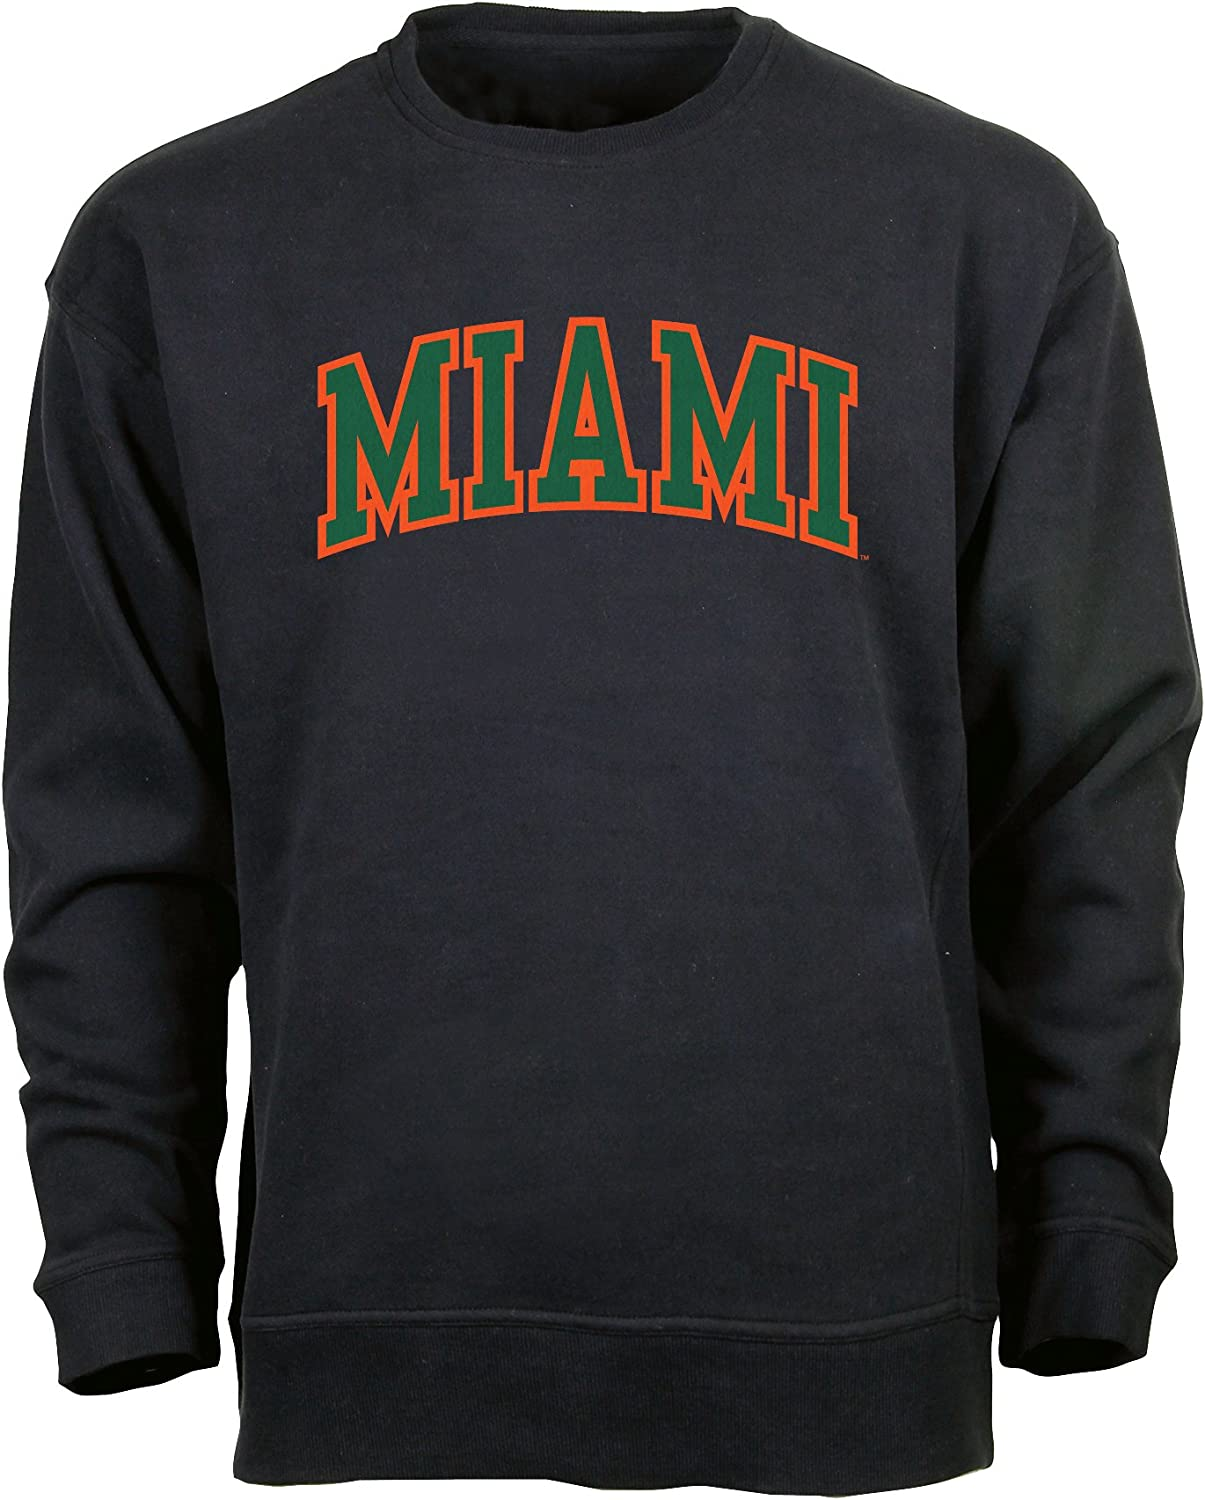 Ouray Sportswear NCAA Miami Hurricanes Mens Legacy DLX Crew Sweatshirt Large Black